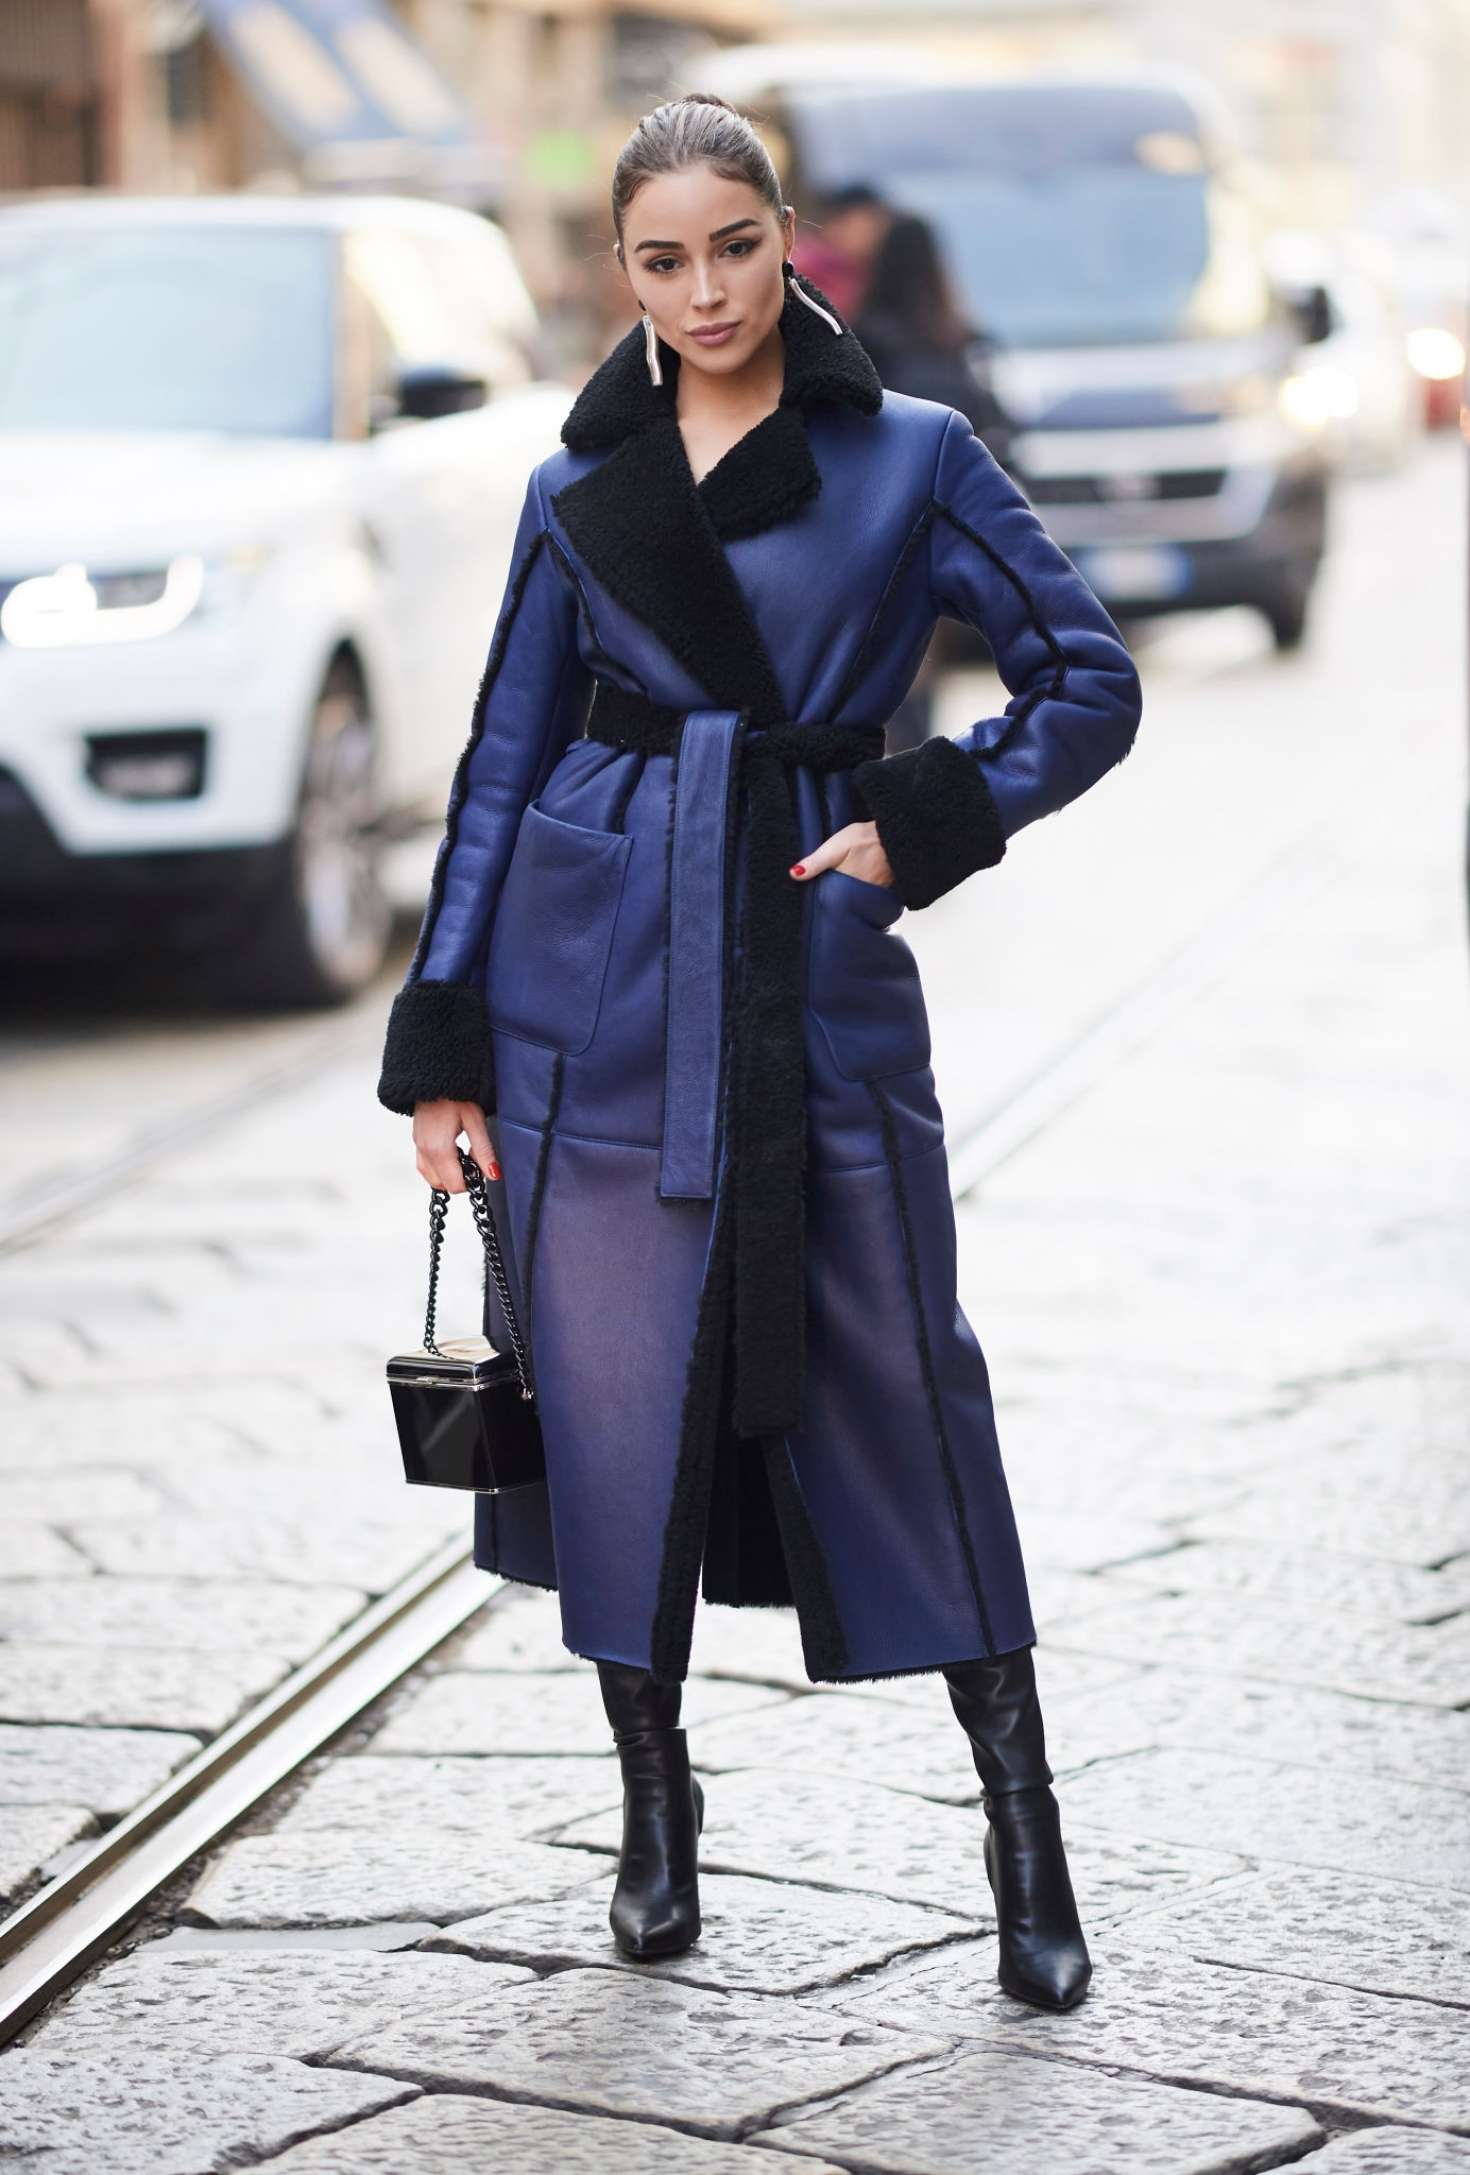 Olivia Culpo in Long Coat - Out in Milan